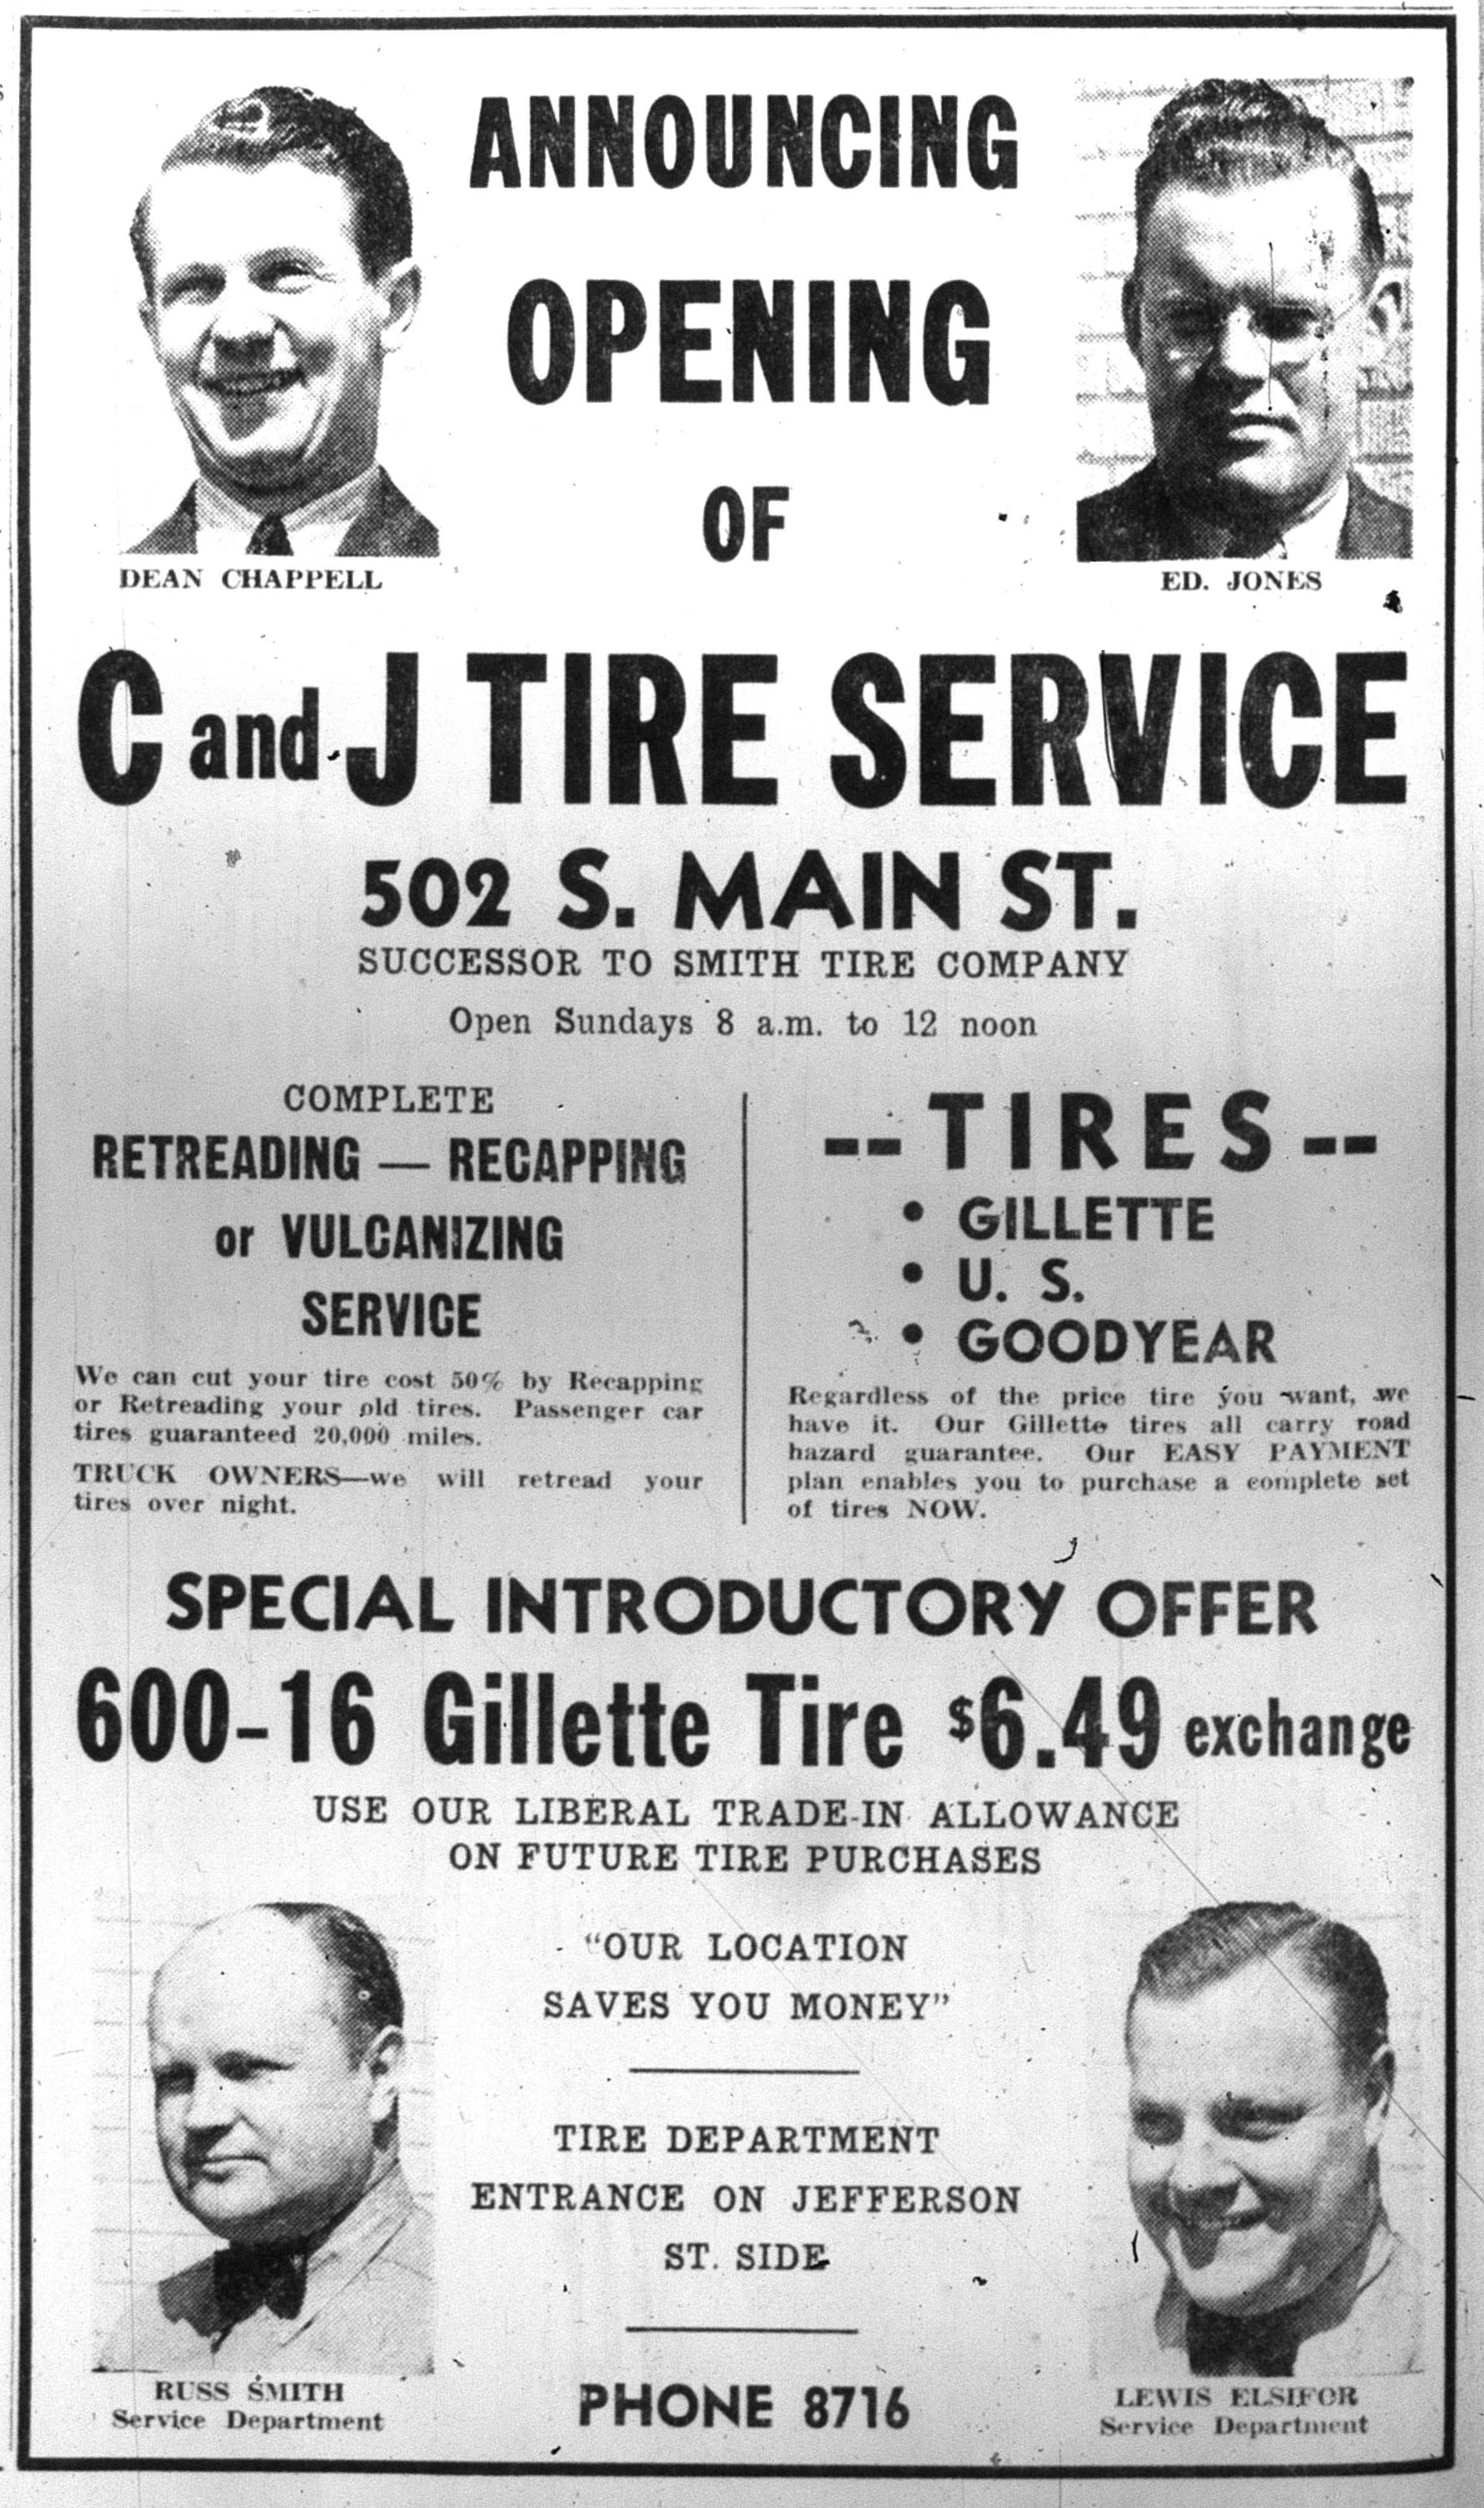 C and J Tire Service image